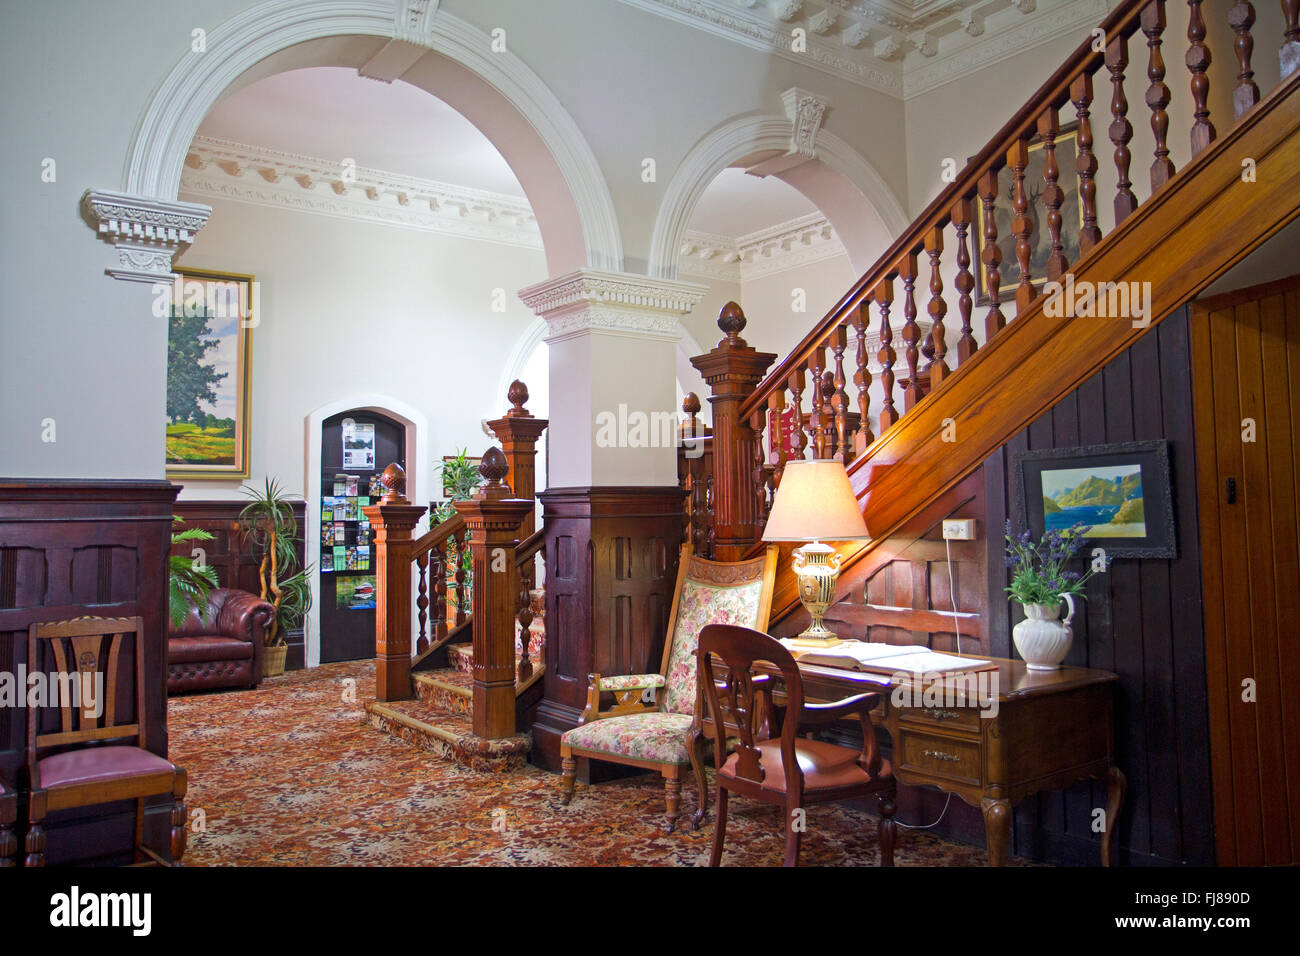 National Trust-listed staircase inside the Empire Hotel in Queenstown - Stock Image